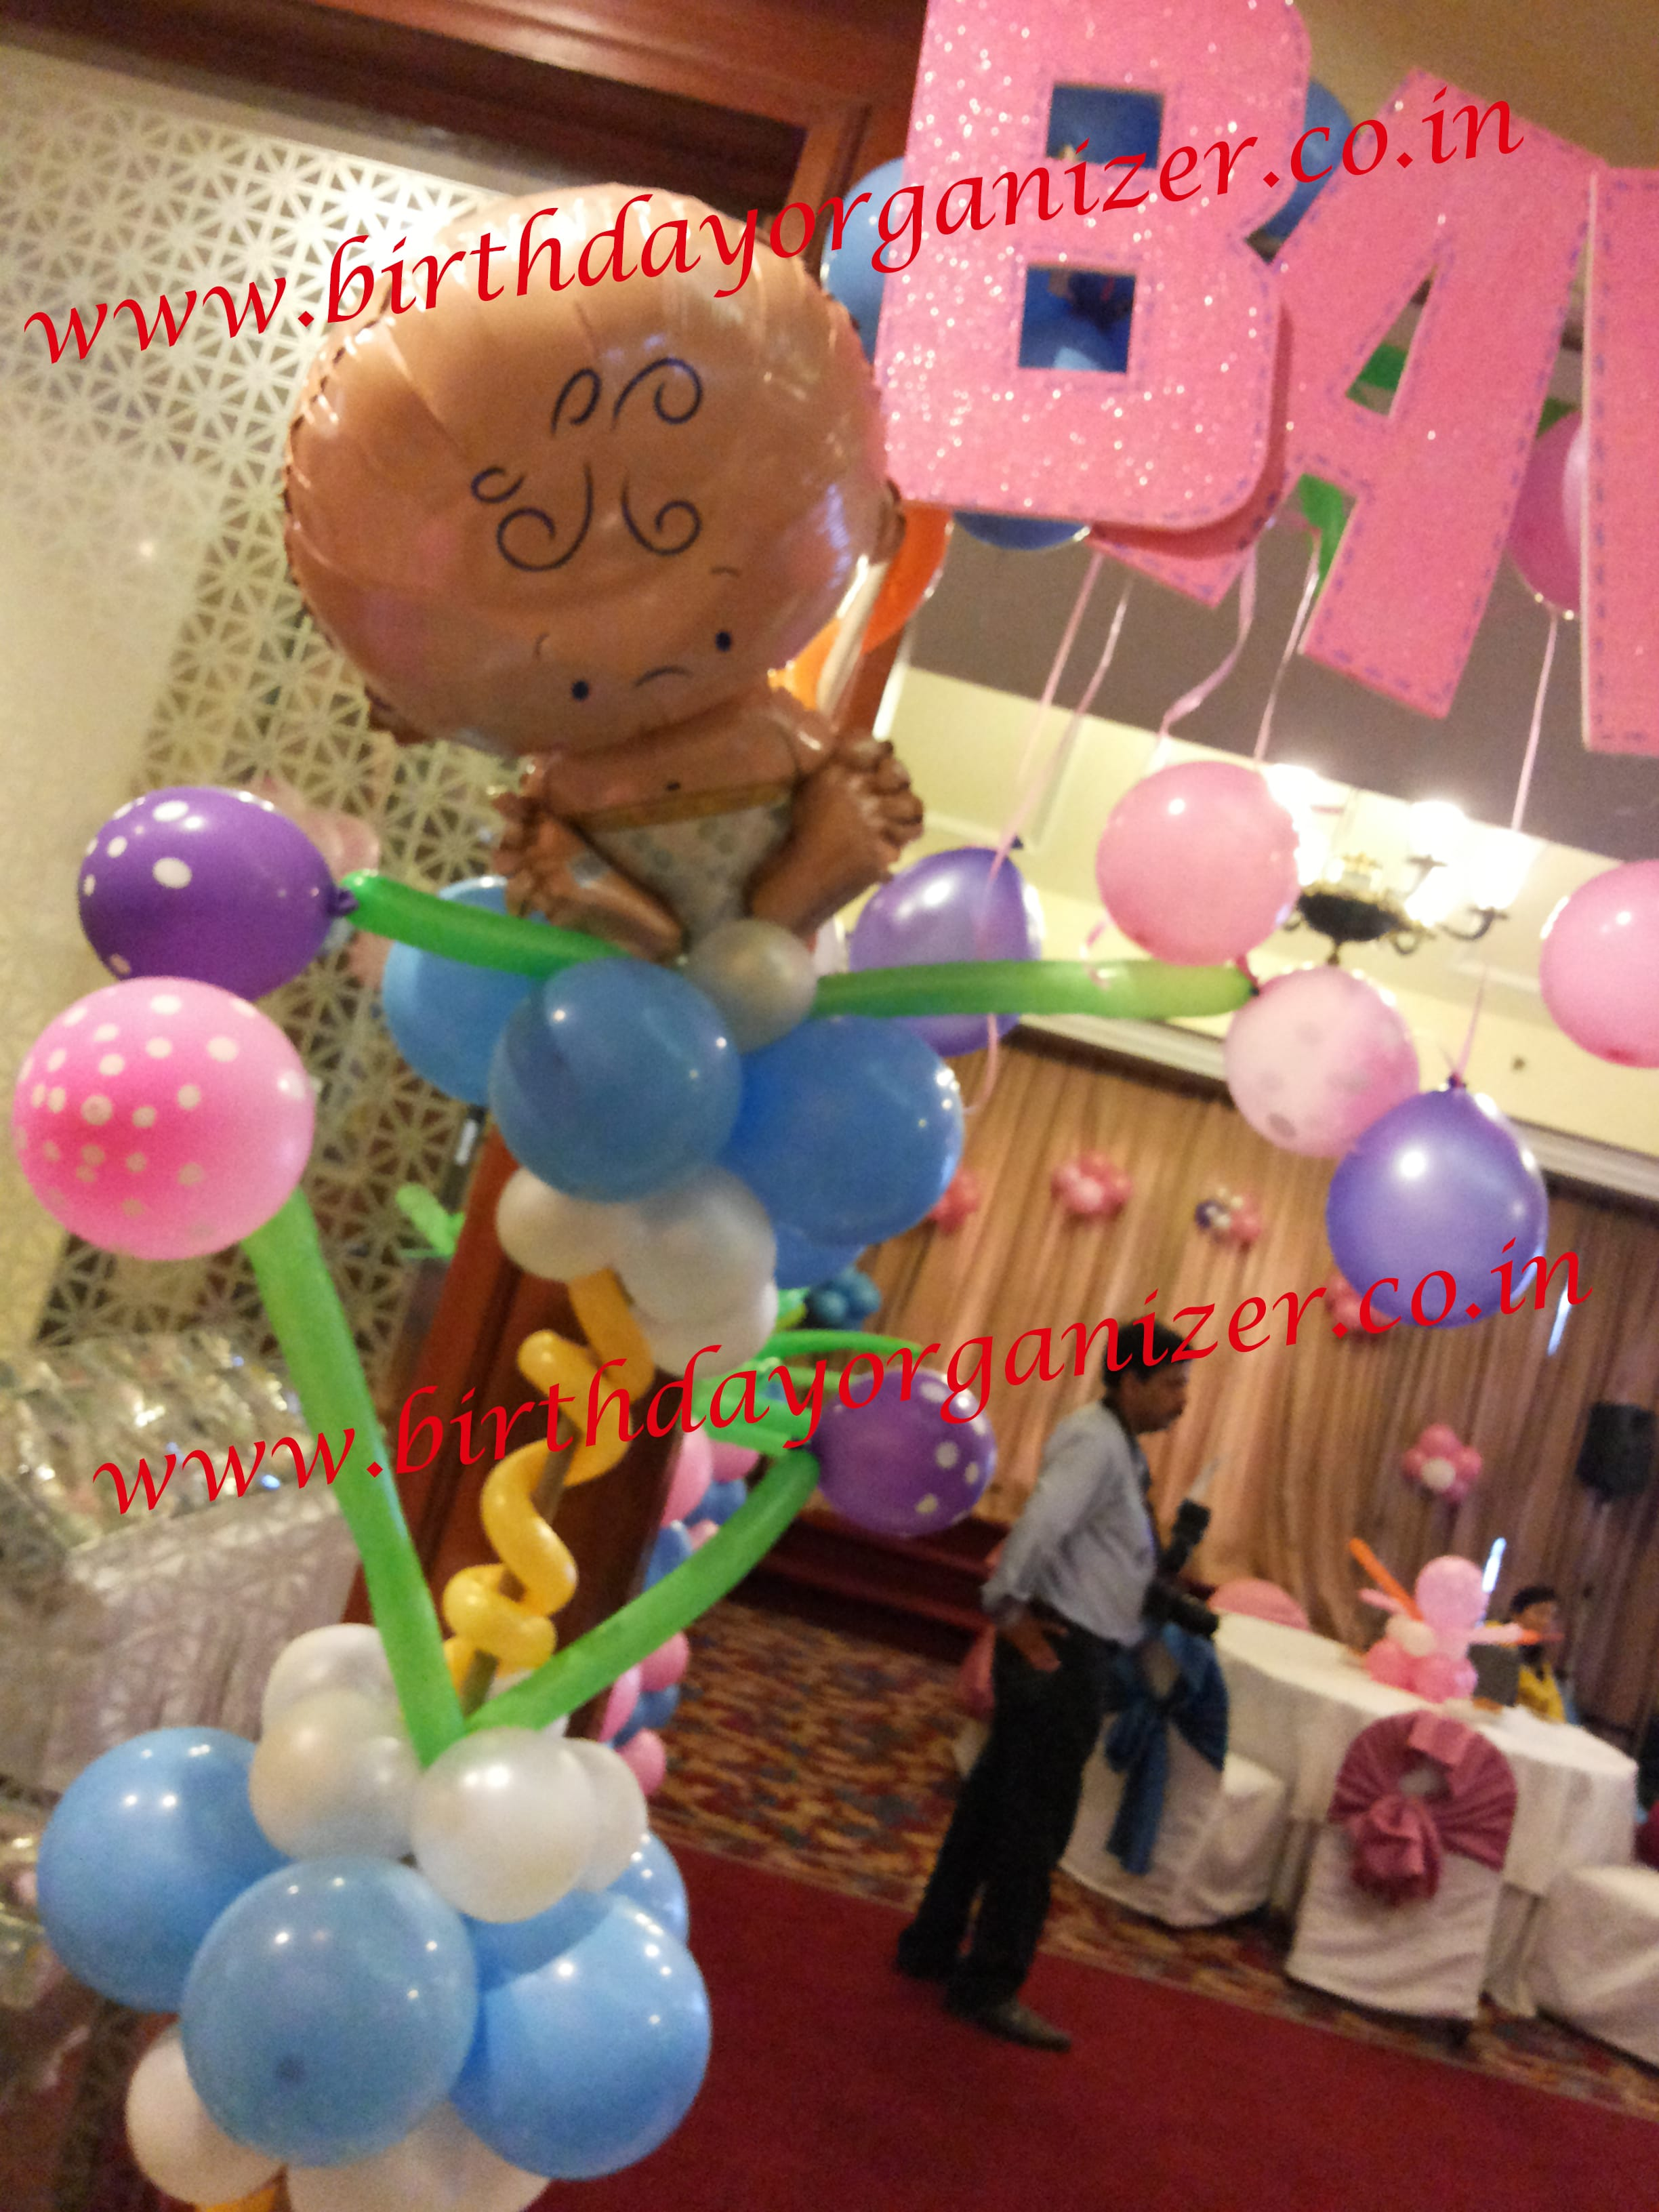 Baby shower birthday party organizer in noida, Baby shower birthday party planner in noida, Baby shower birthday party decoration in noida